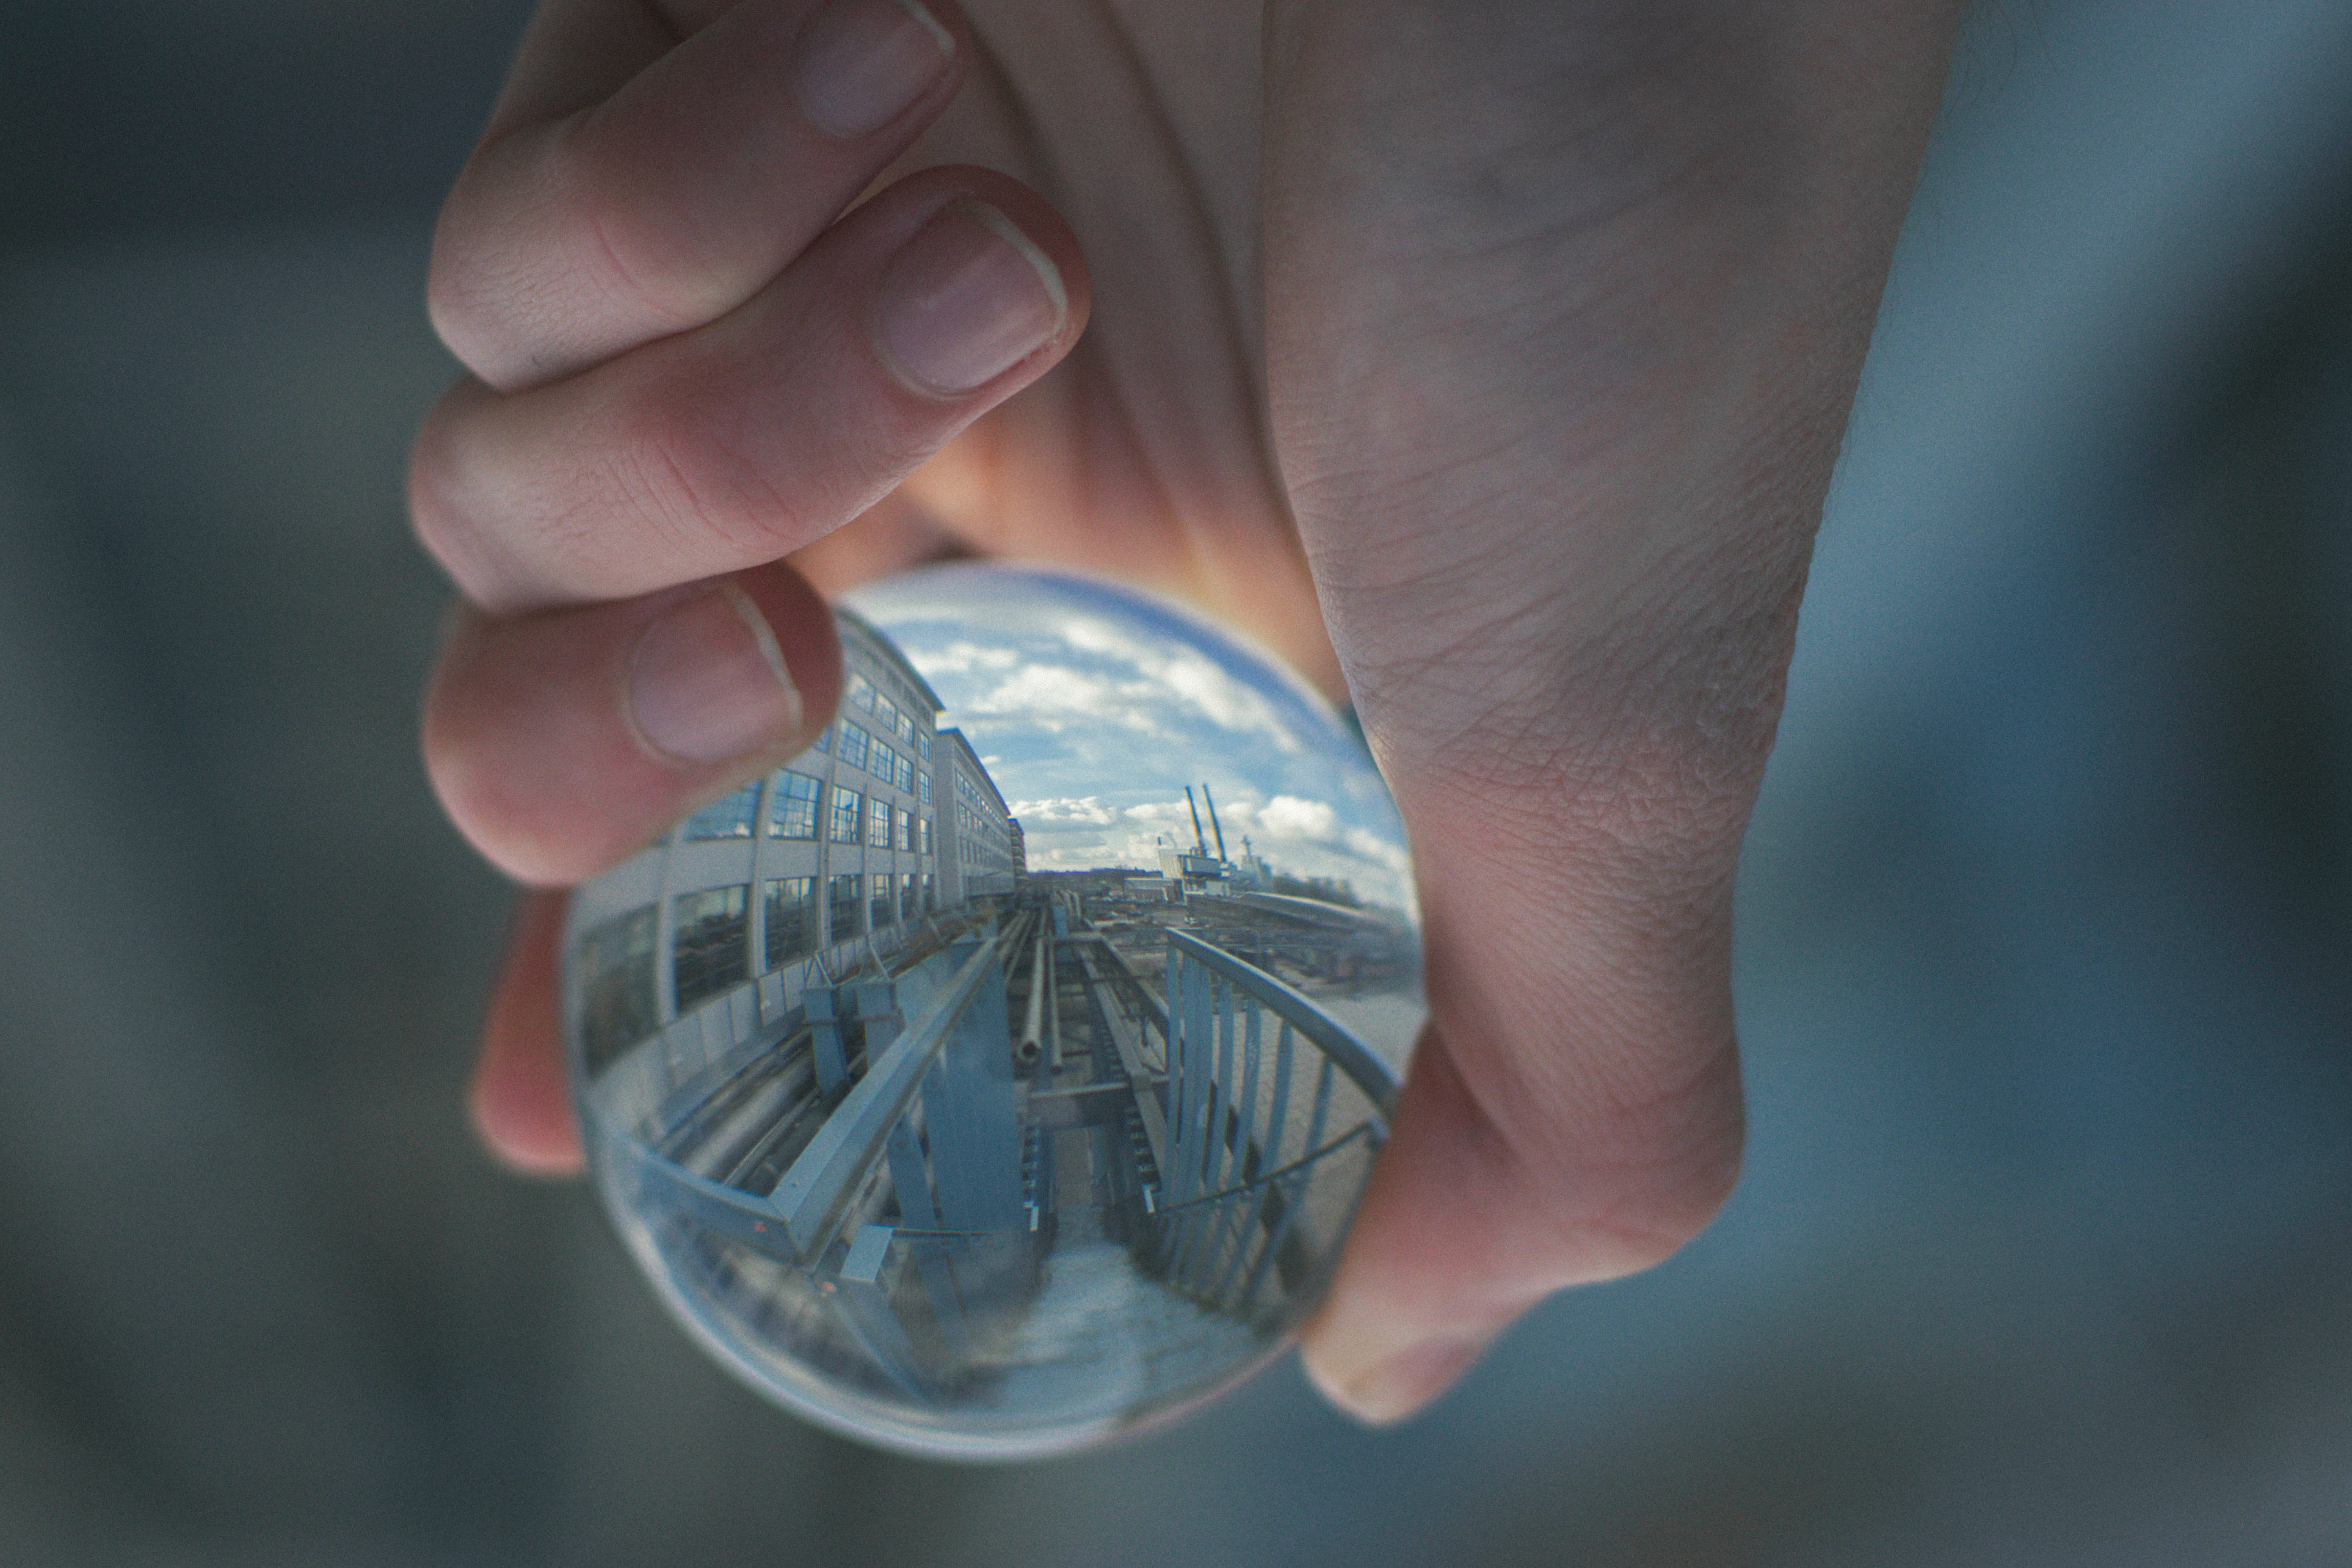 Person Holding Clear Glass Decor, Ball, Outdoorchallenge, Technology, Spherical, HQ Photo